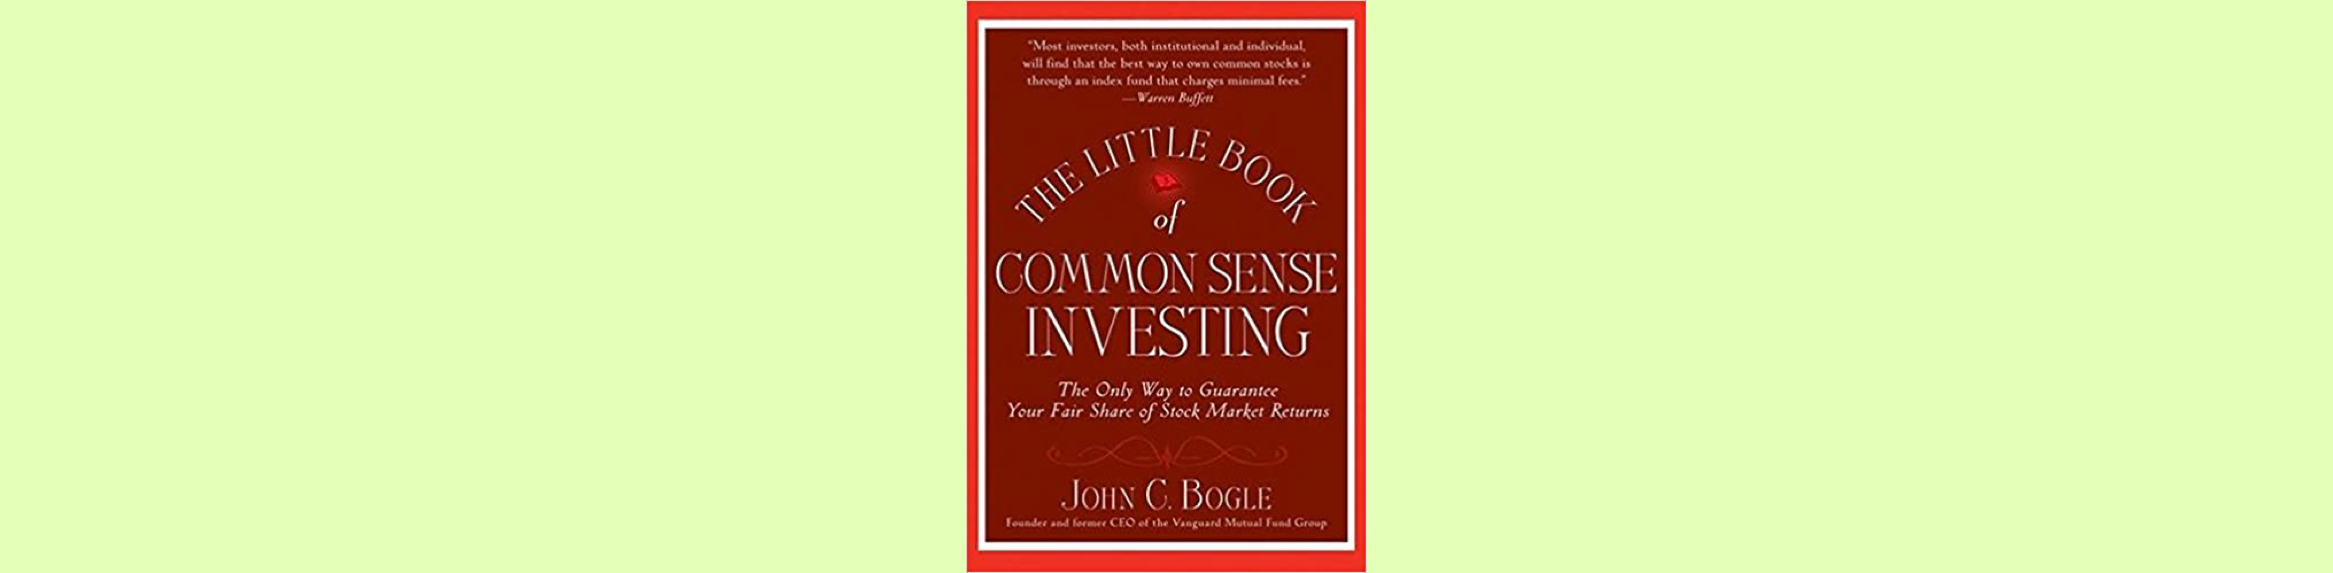 Top 18 Best Investing Books to Read for Every Investor (2021 List) The Little Book of Common Sense Investing: The Only Way to Guarantee Your Fair Share of Stock Market Returns – John Bogle